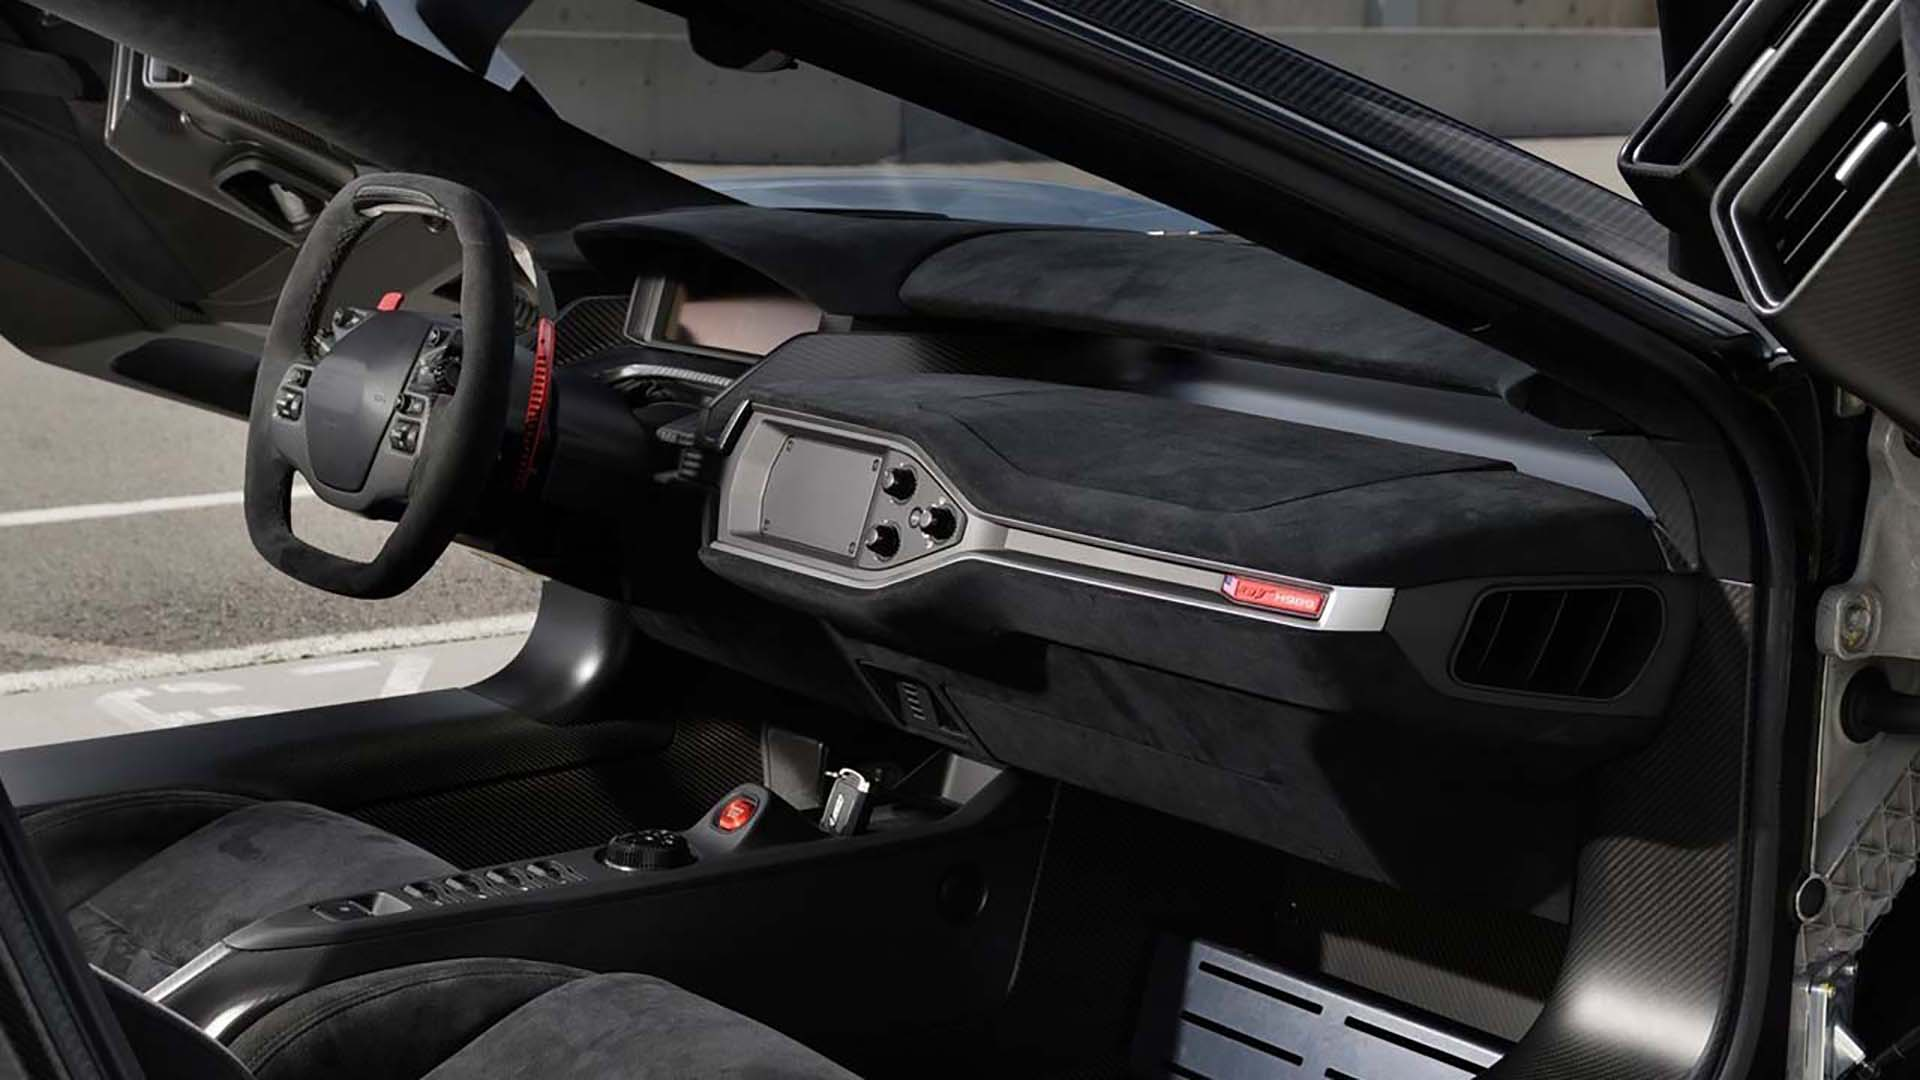 Ford GT Interior design by ADP Special Projects